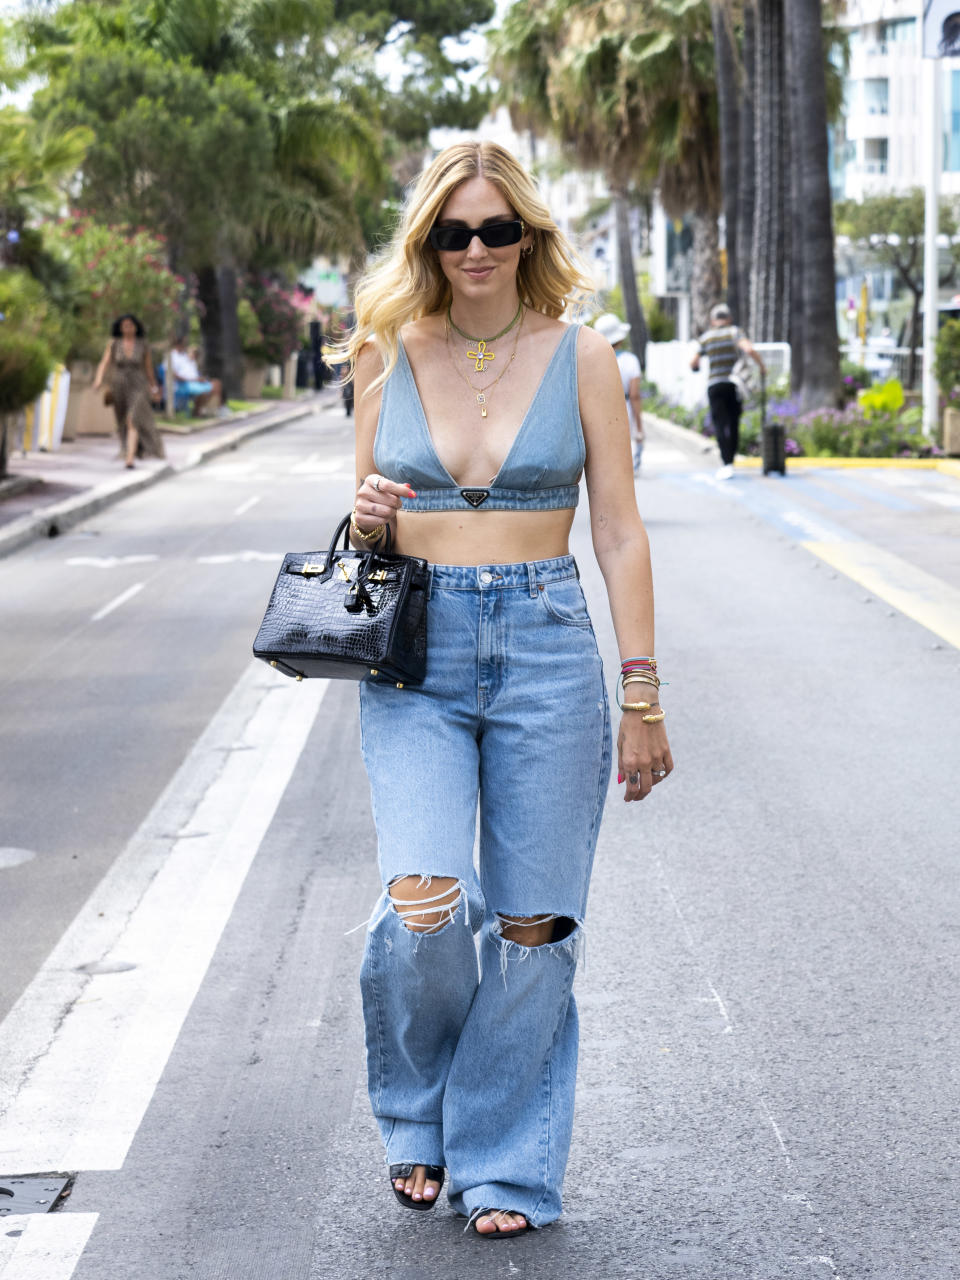 Chiara Ferragni, an Italian influencer and designer, was spotted in Cannes wearing a denim crop top.(Photo by Arnold Jerocki/GC Images)